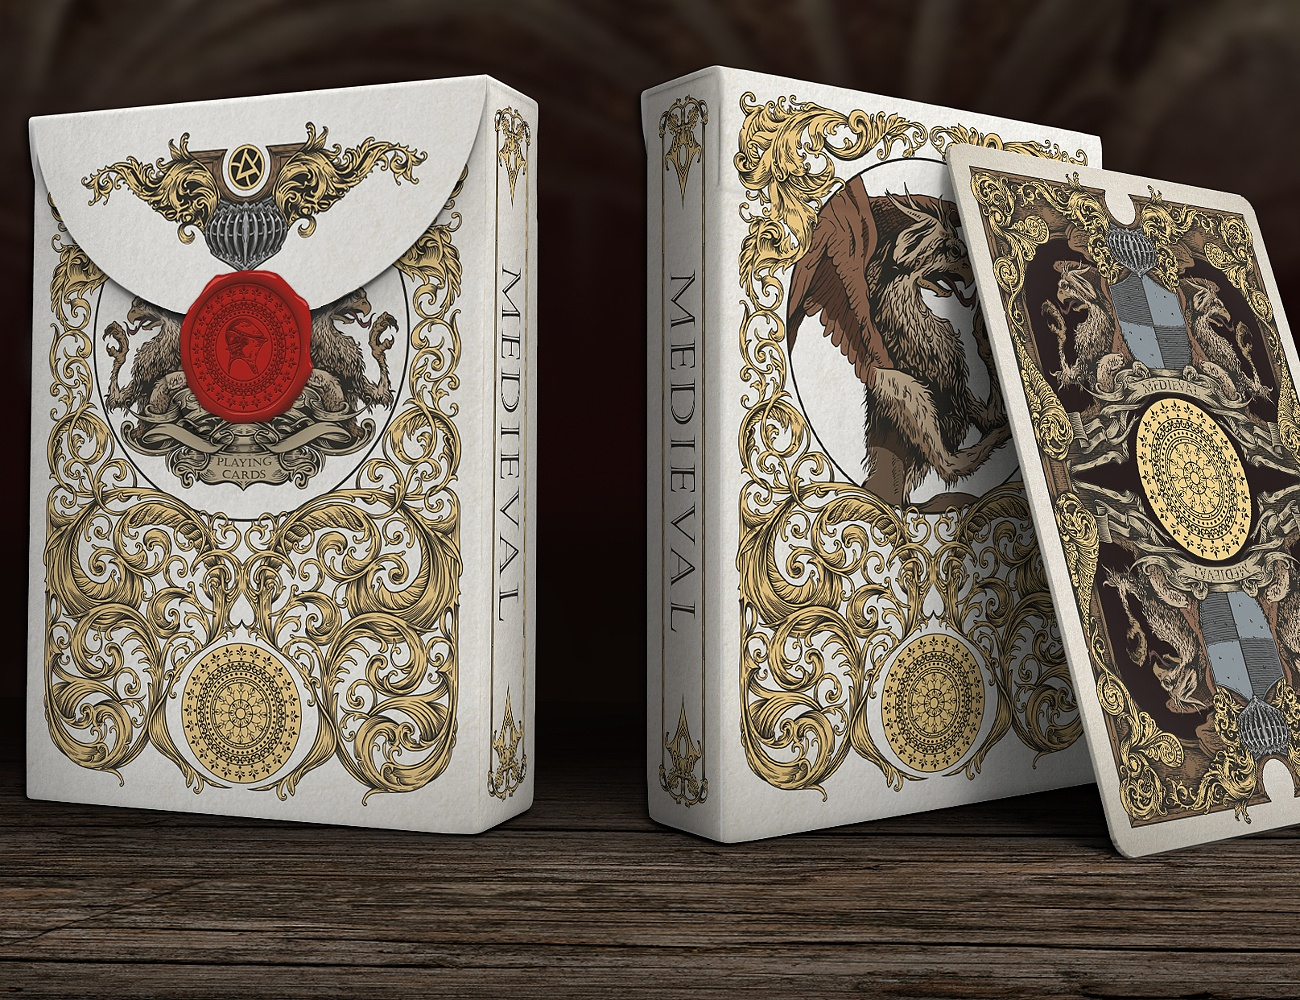 Medieval Playing Cards by Elephant Playing Cards